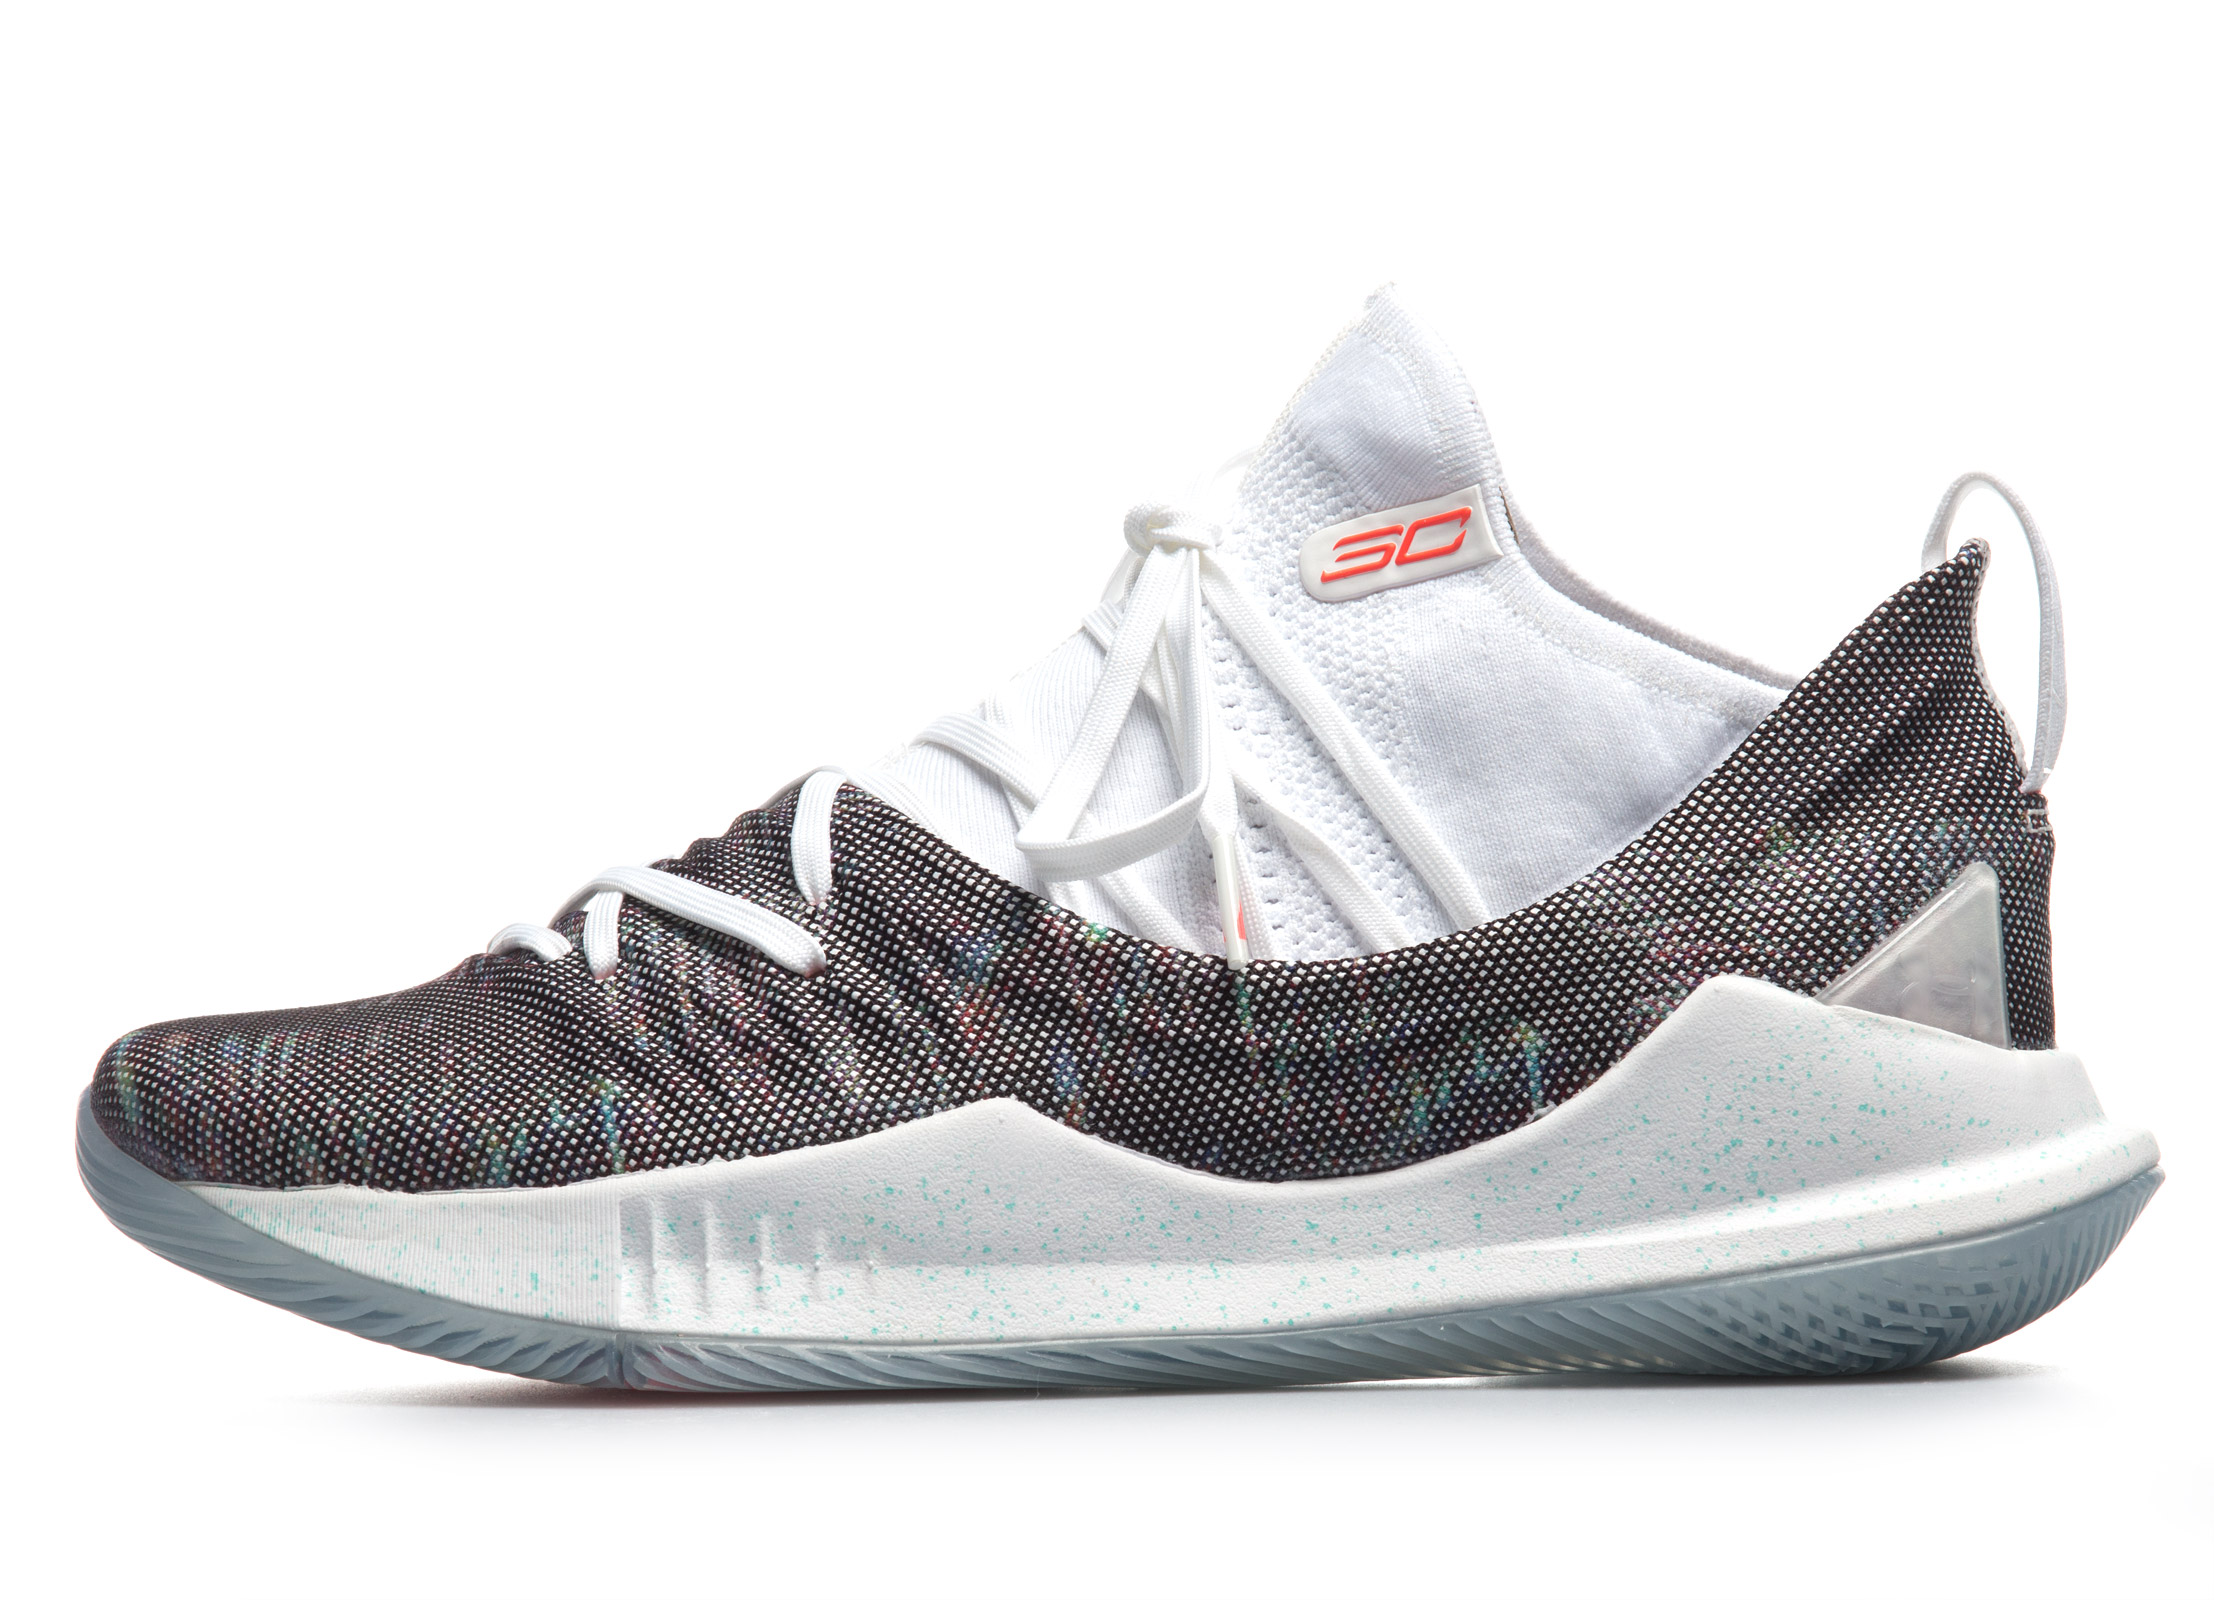 UNDER ARMOUR CURRY 5 «WELCOME HOME» 3020657-107 Λευκό